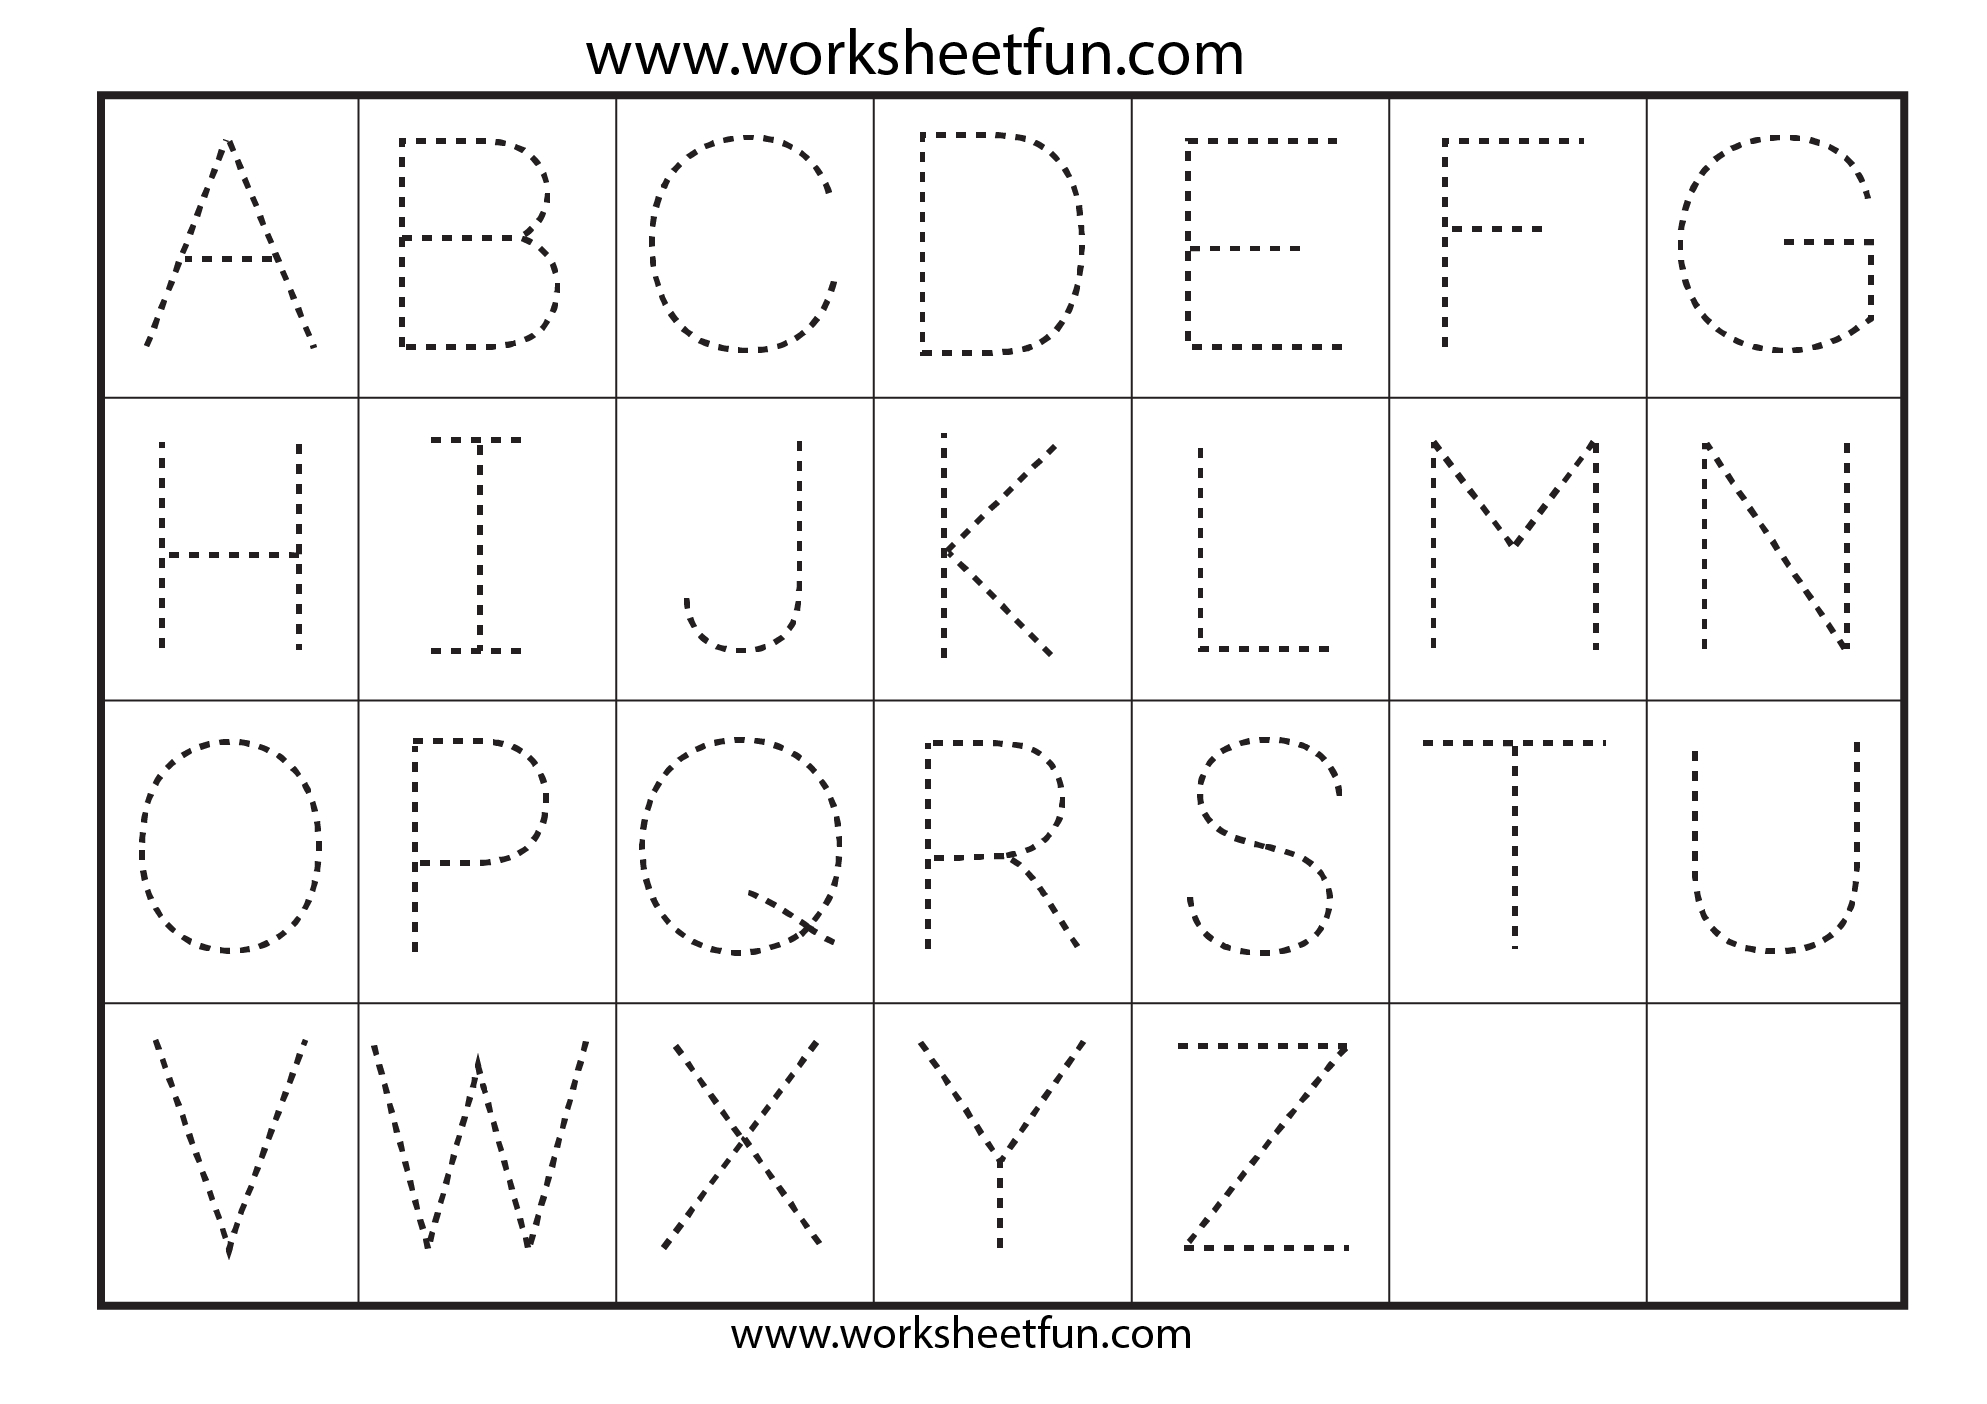 42 Educative Letter Tracing Worksheets | Kittybabylove - Free Printable Letter Tracing Sheets